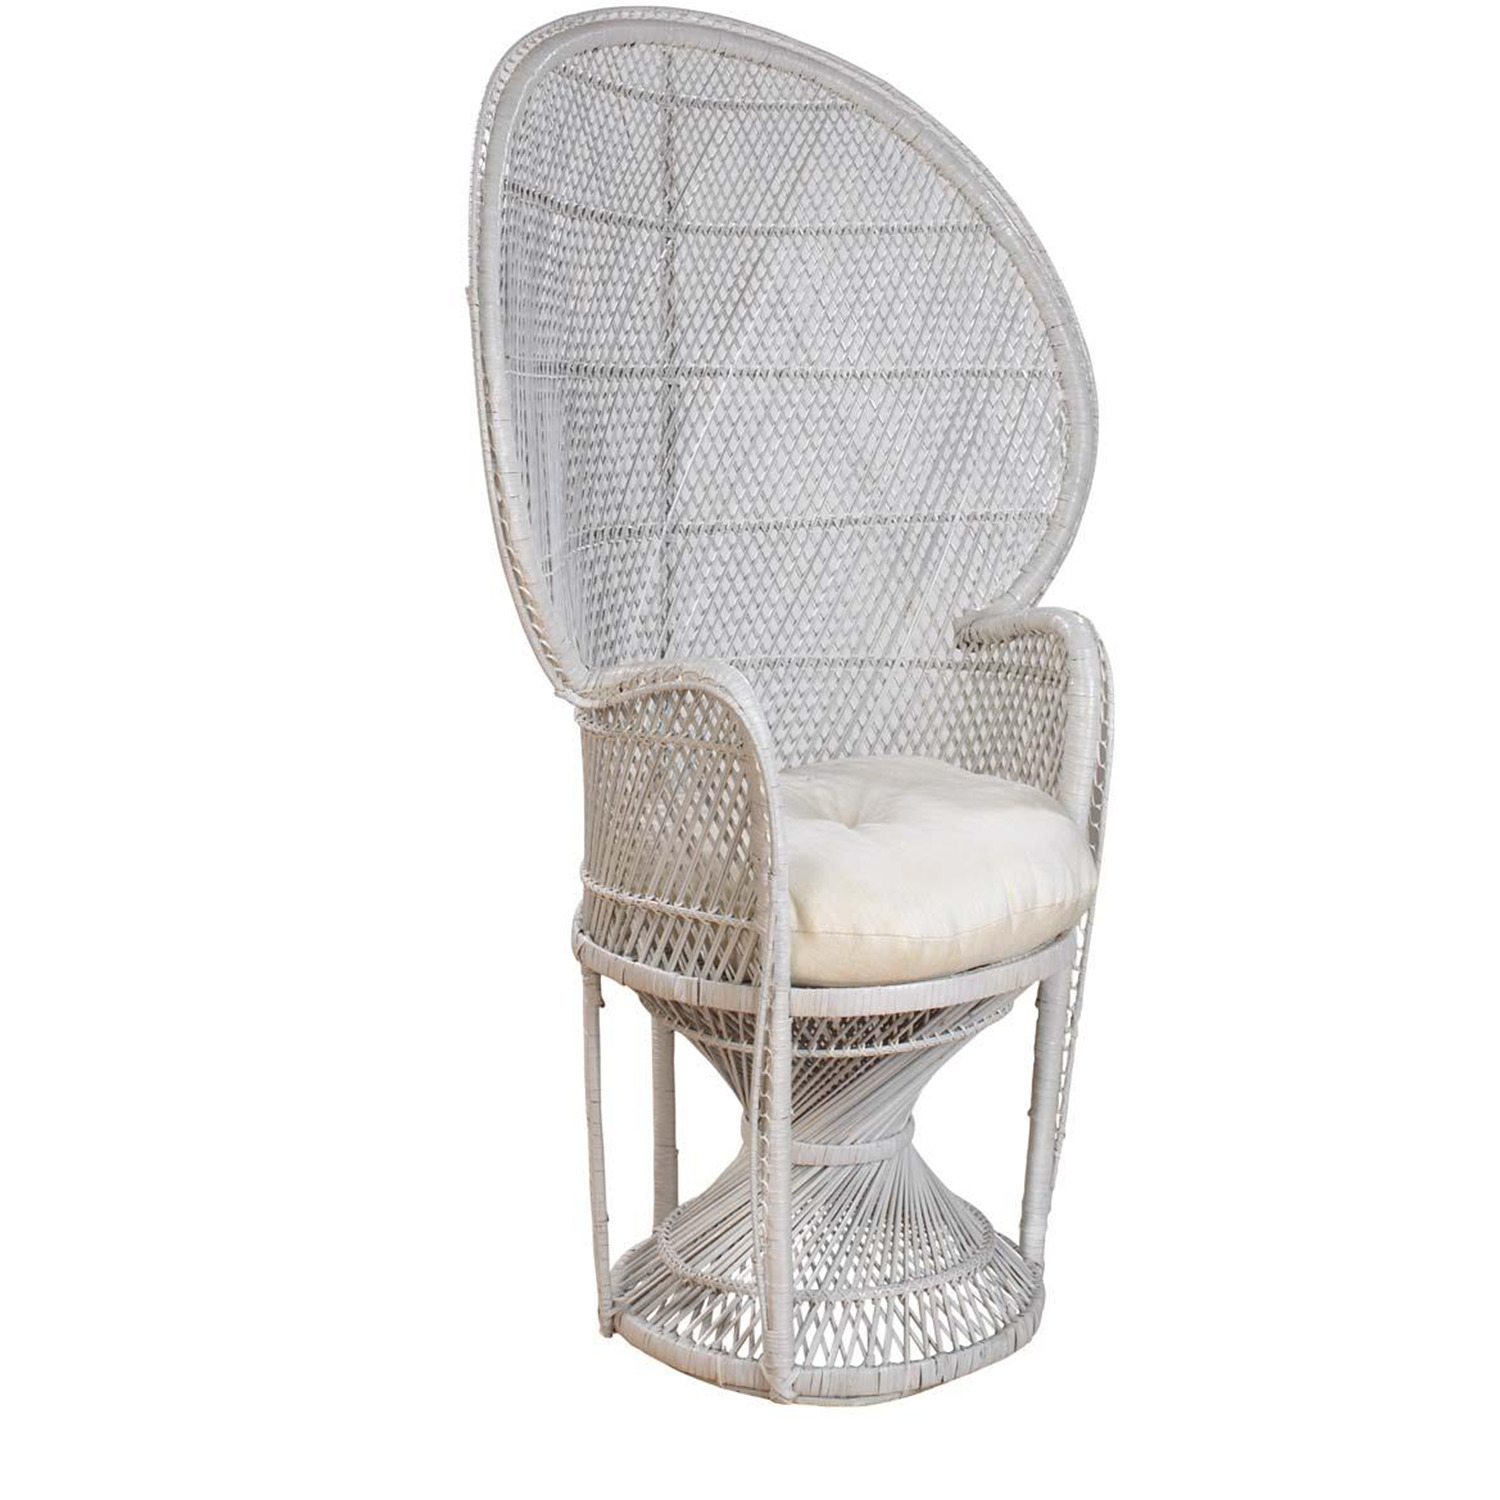 Peacock chair buri by oj commerce 259 00 347 99